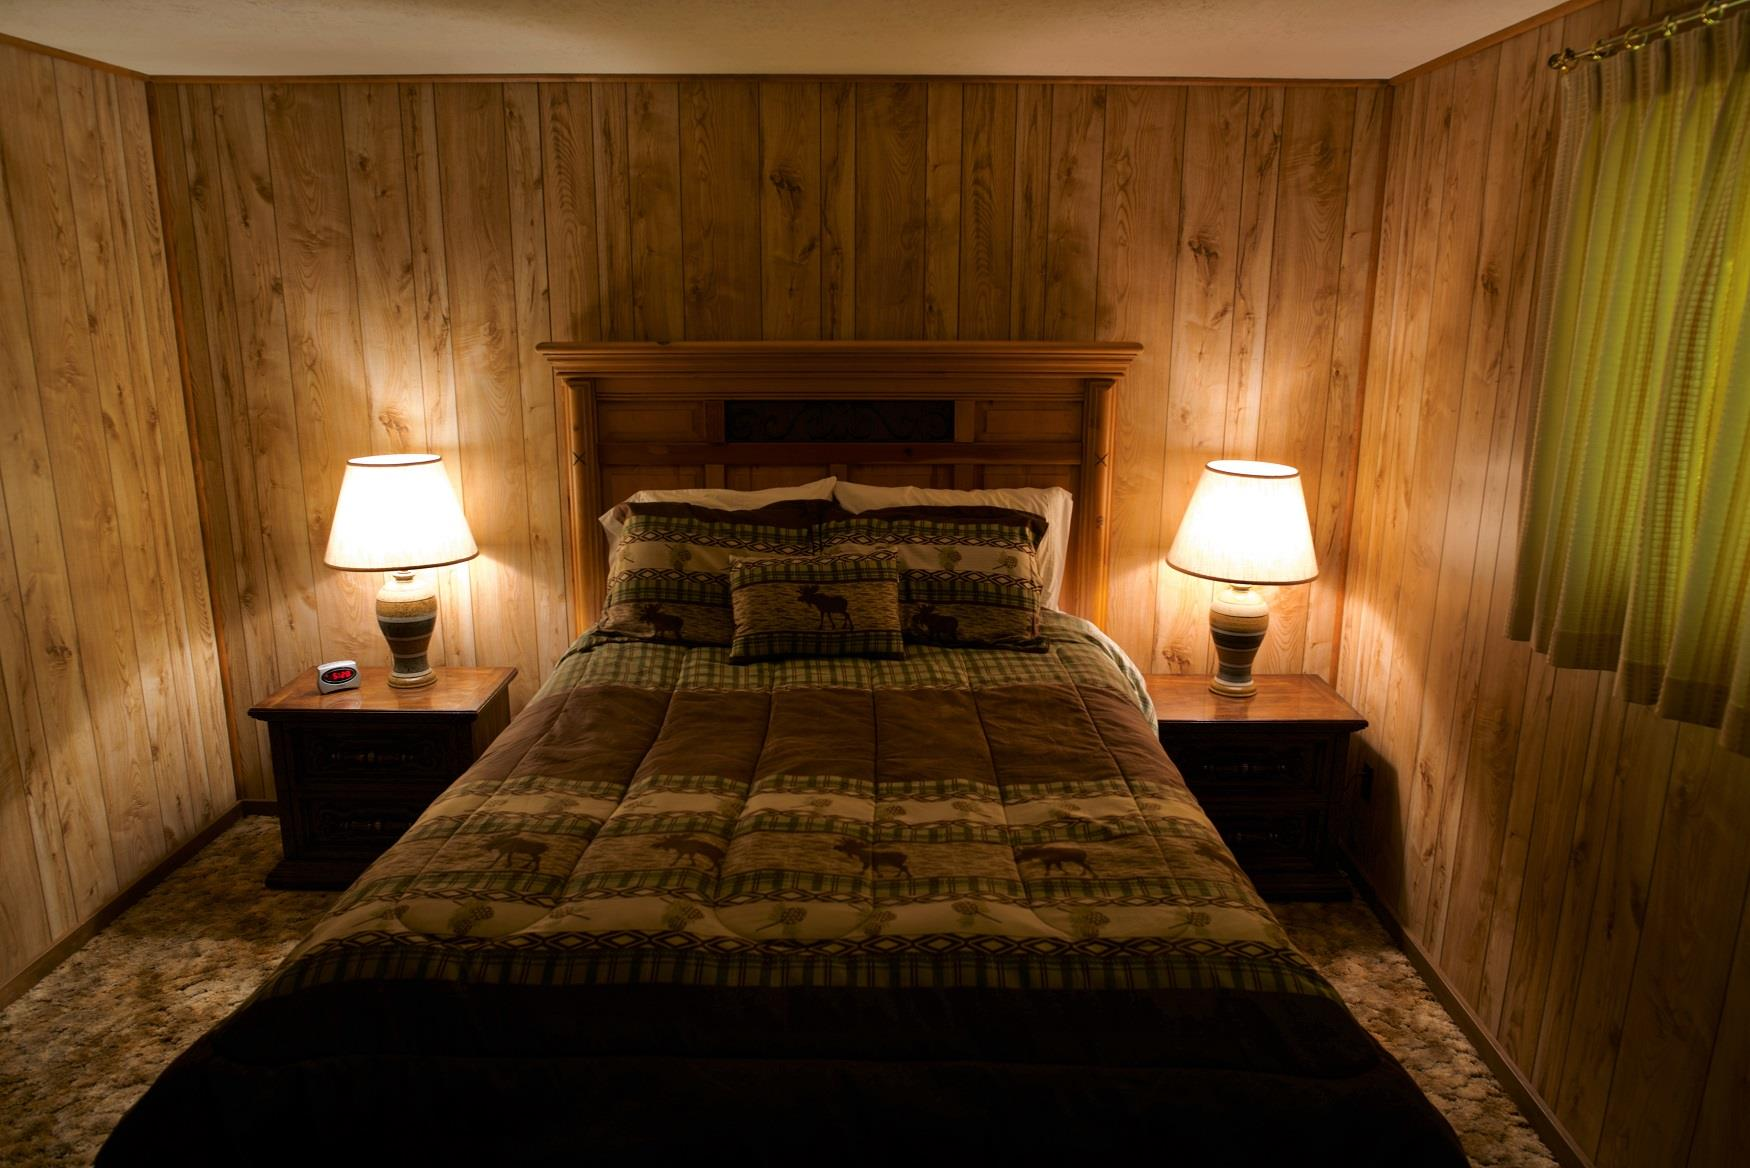 Get your best night sleep in the comfy queen bed in Haberman Cabin, at Cold Springs Resort & RV Park in Camp Sherman, Oregon